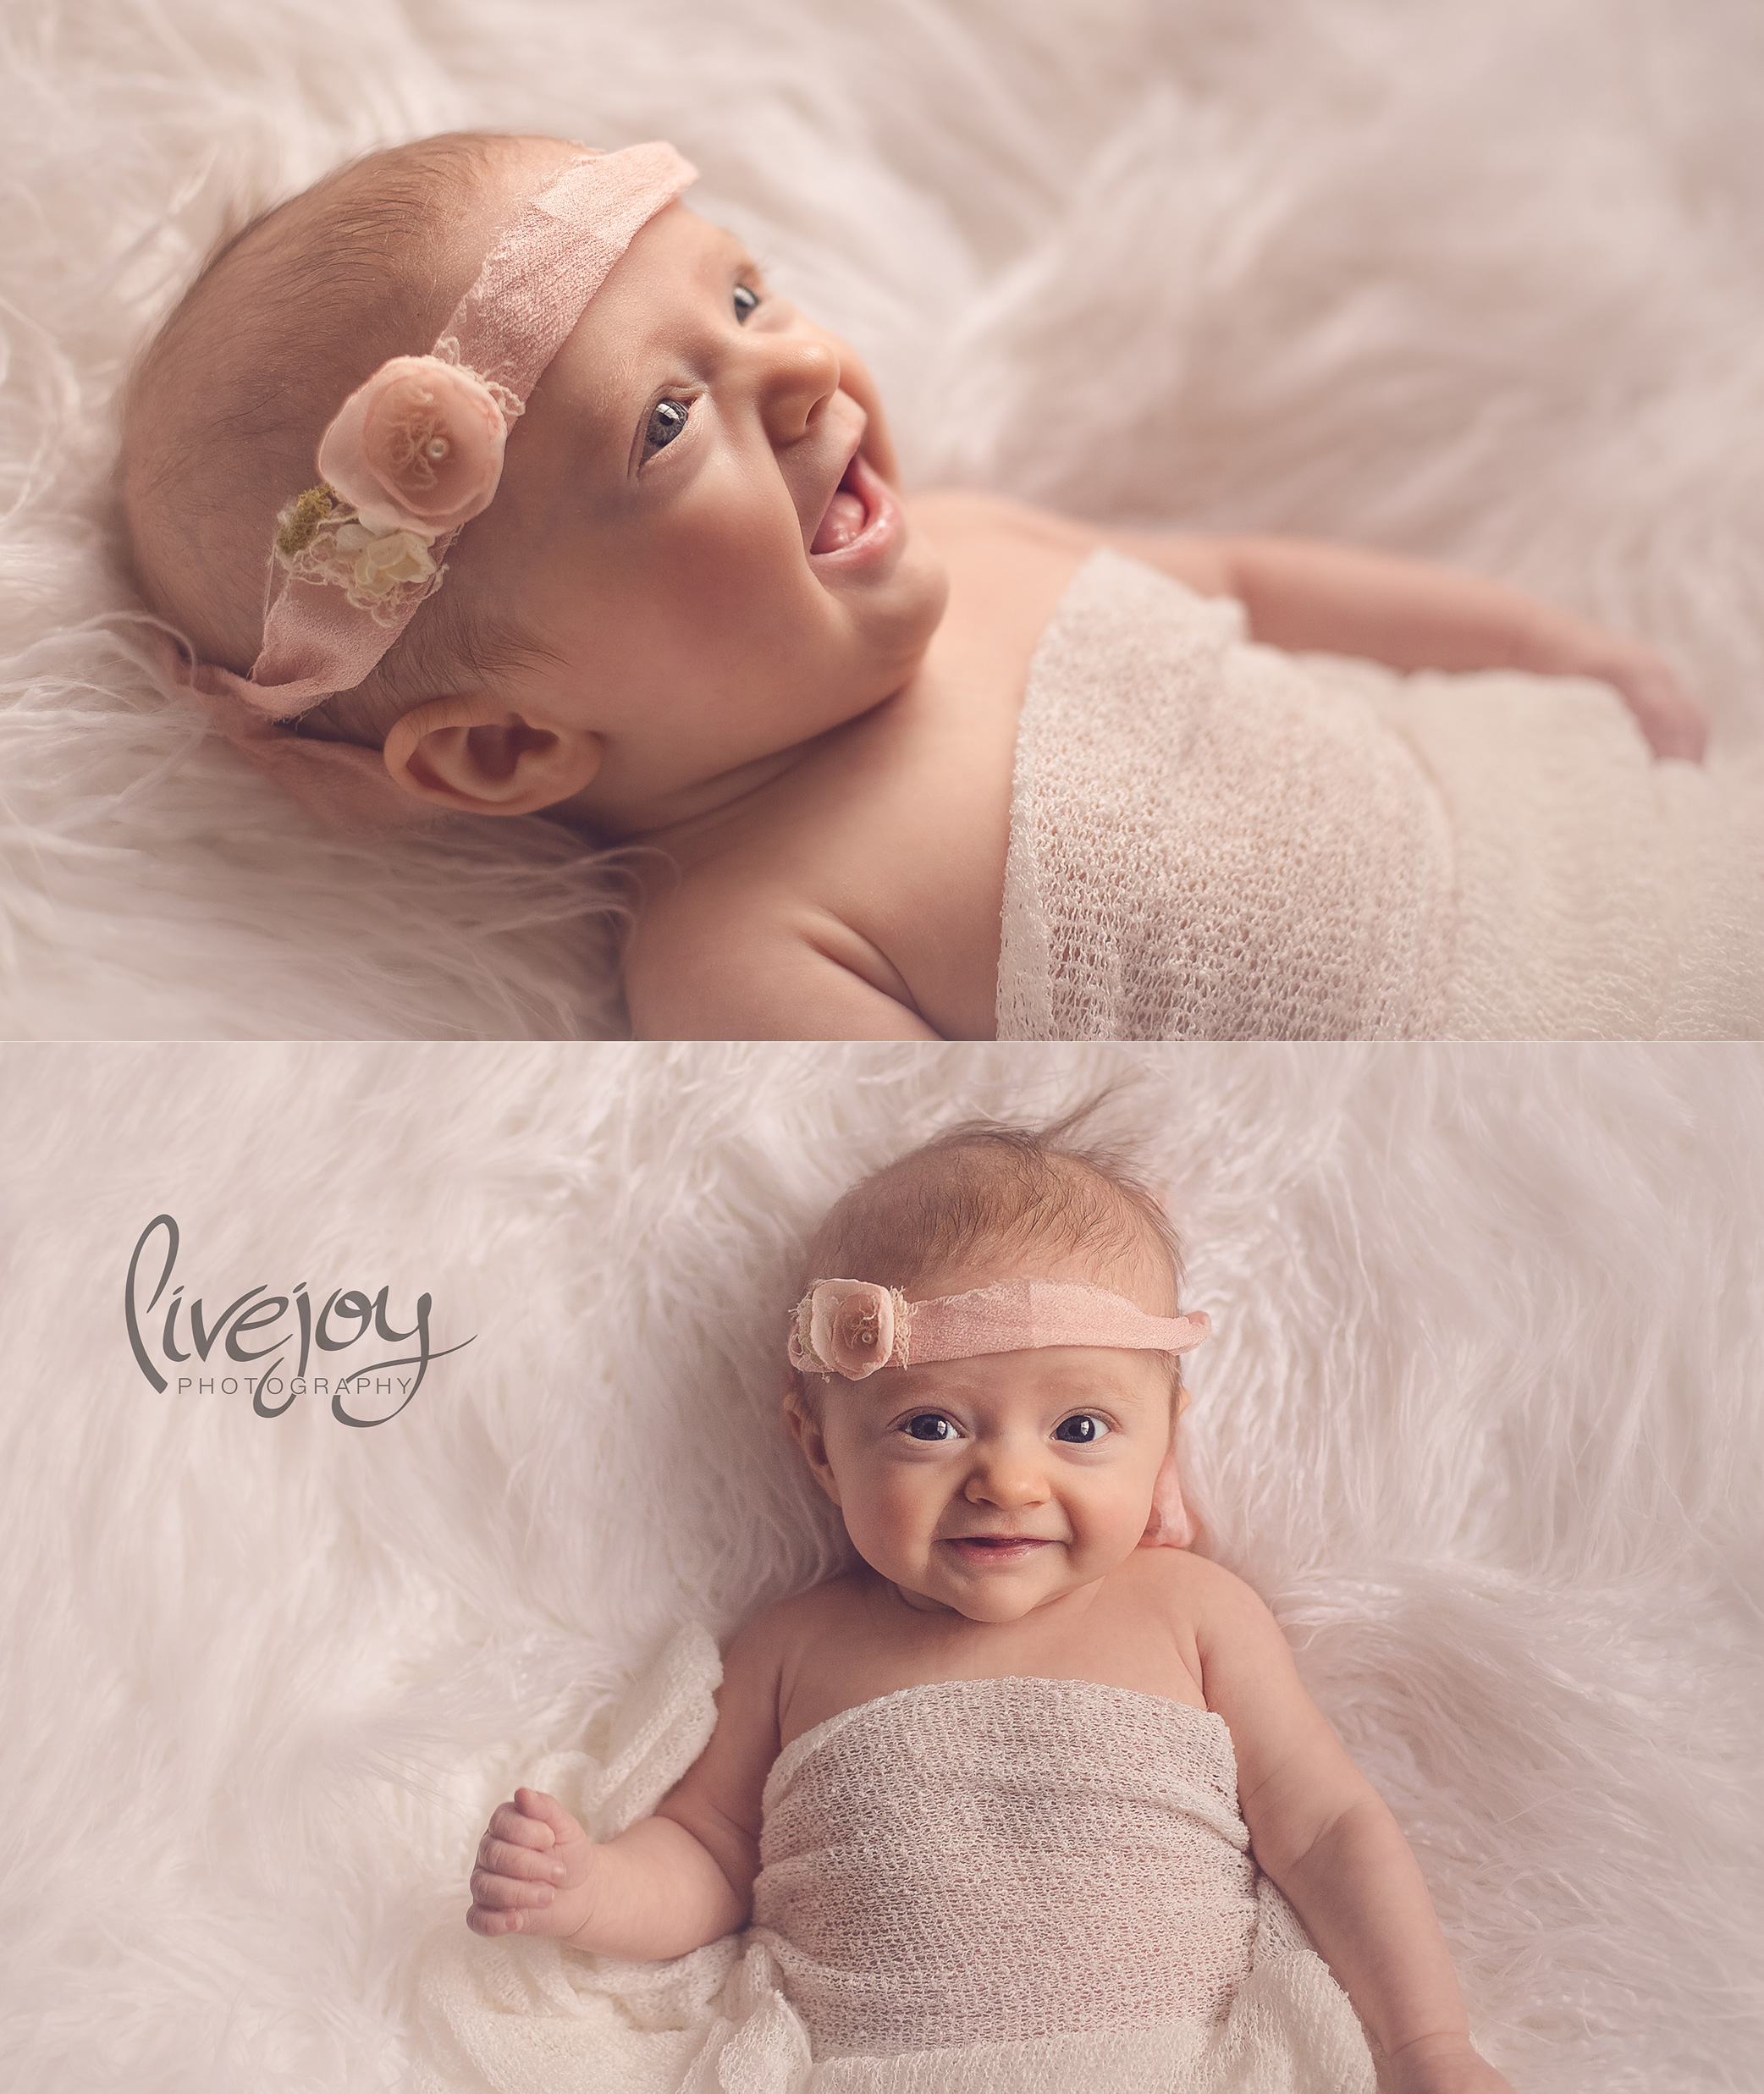 Baby Milestone Photography | LiveJoy Photography